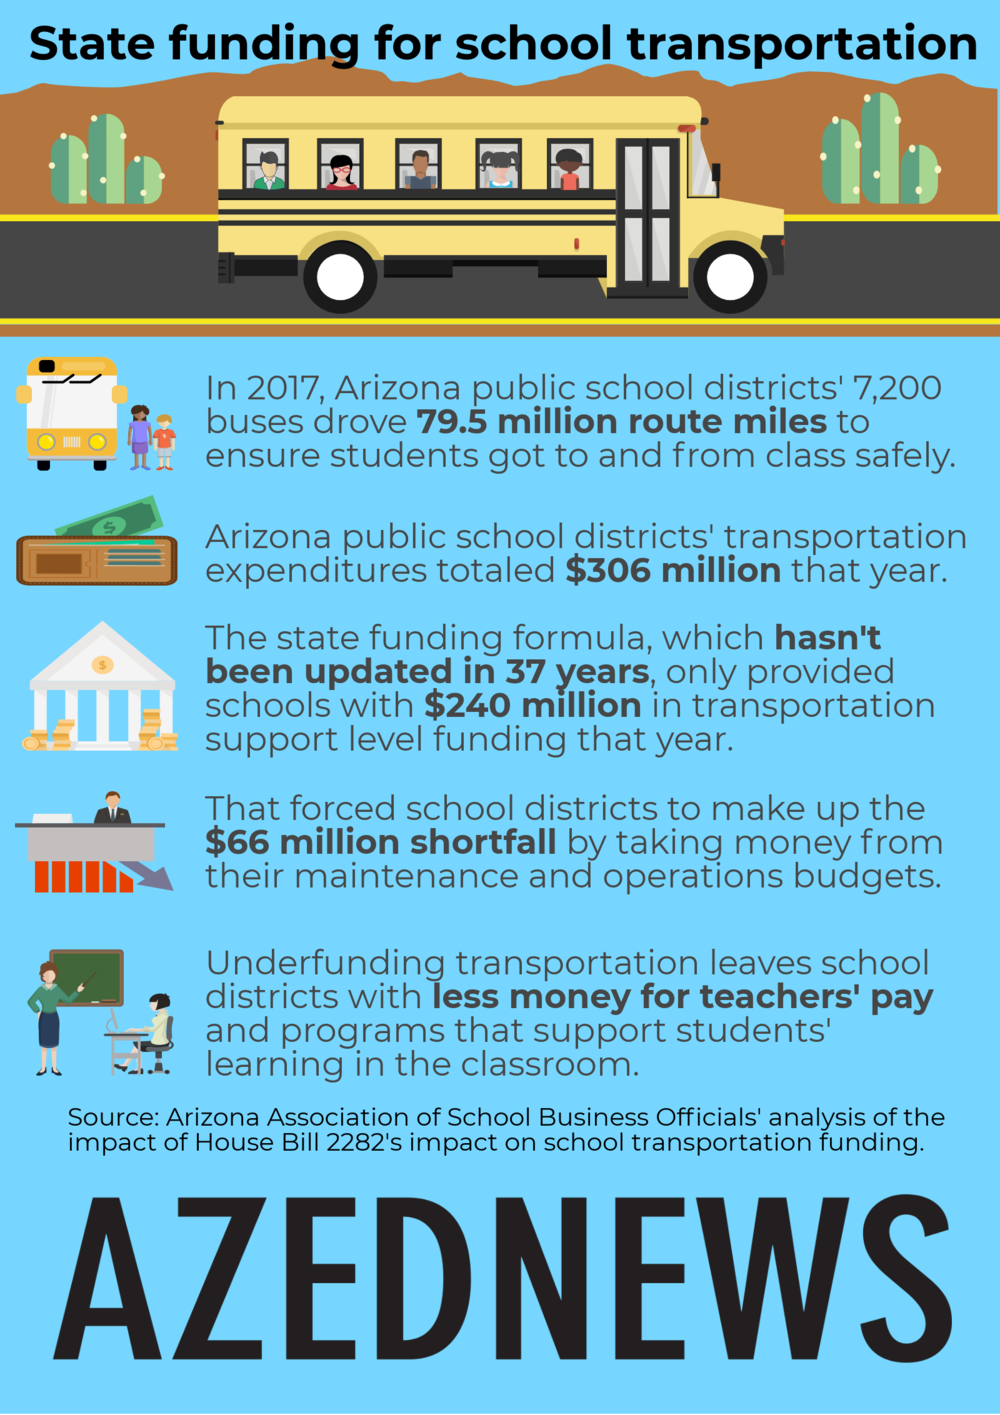 AZEdNewsAZTransportationFundingInfographic-1.png